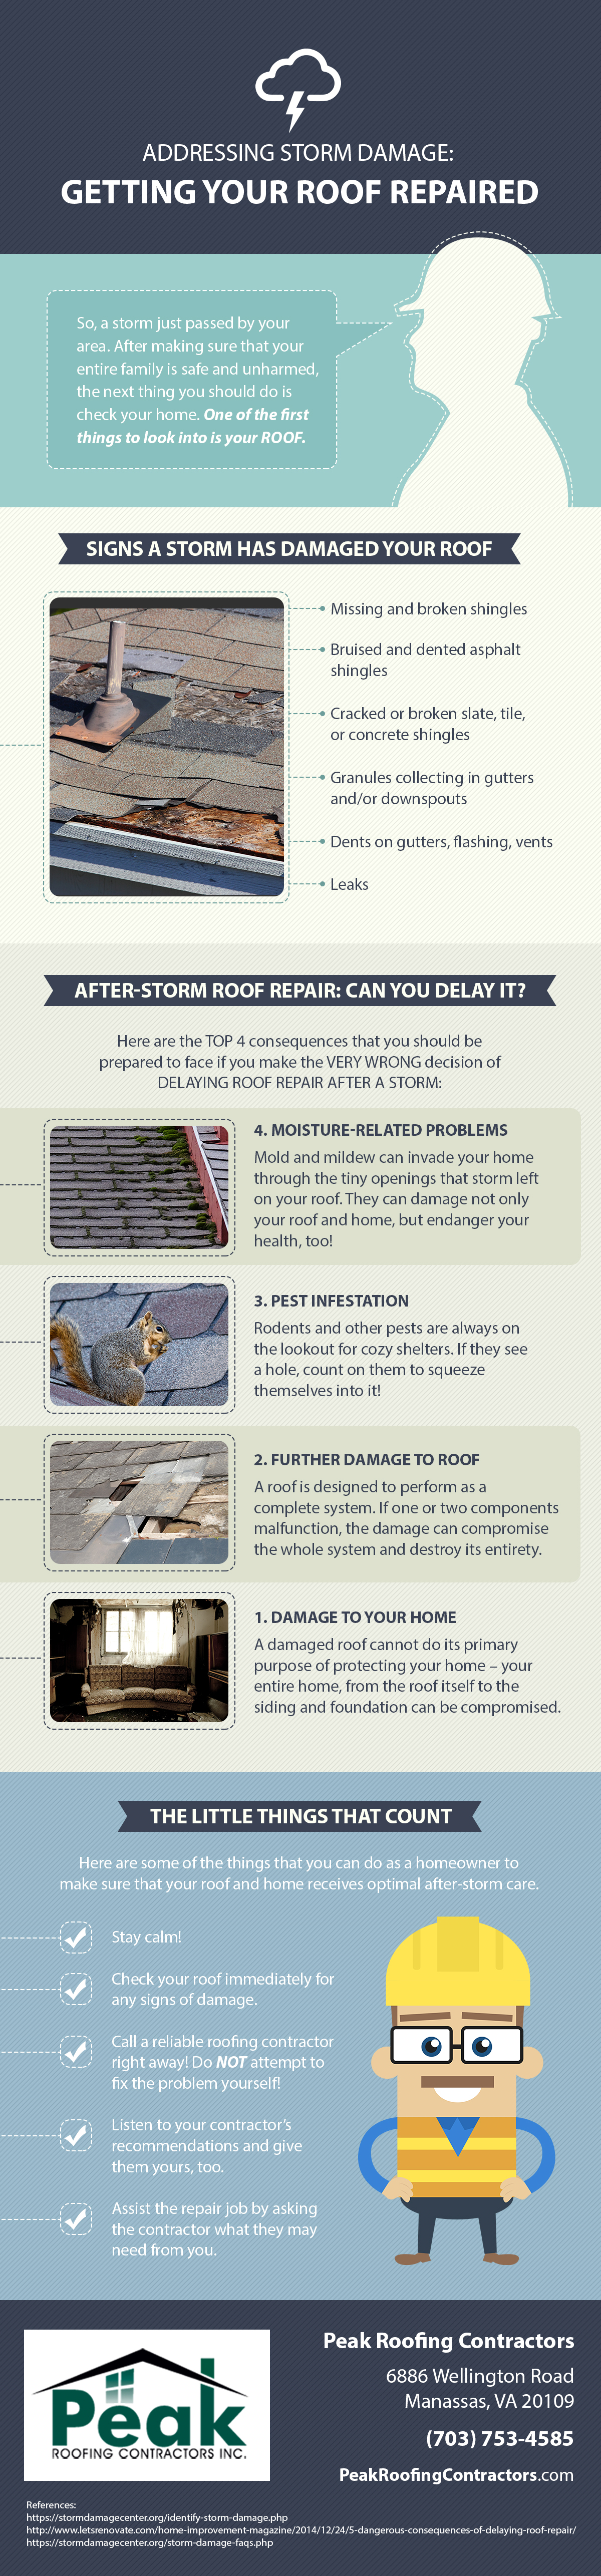 Addressing Storm Damage Getting Your Roof Repaired